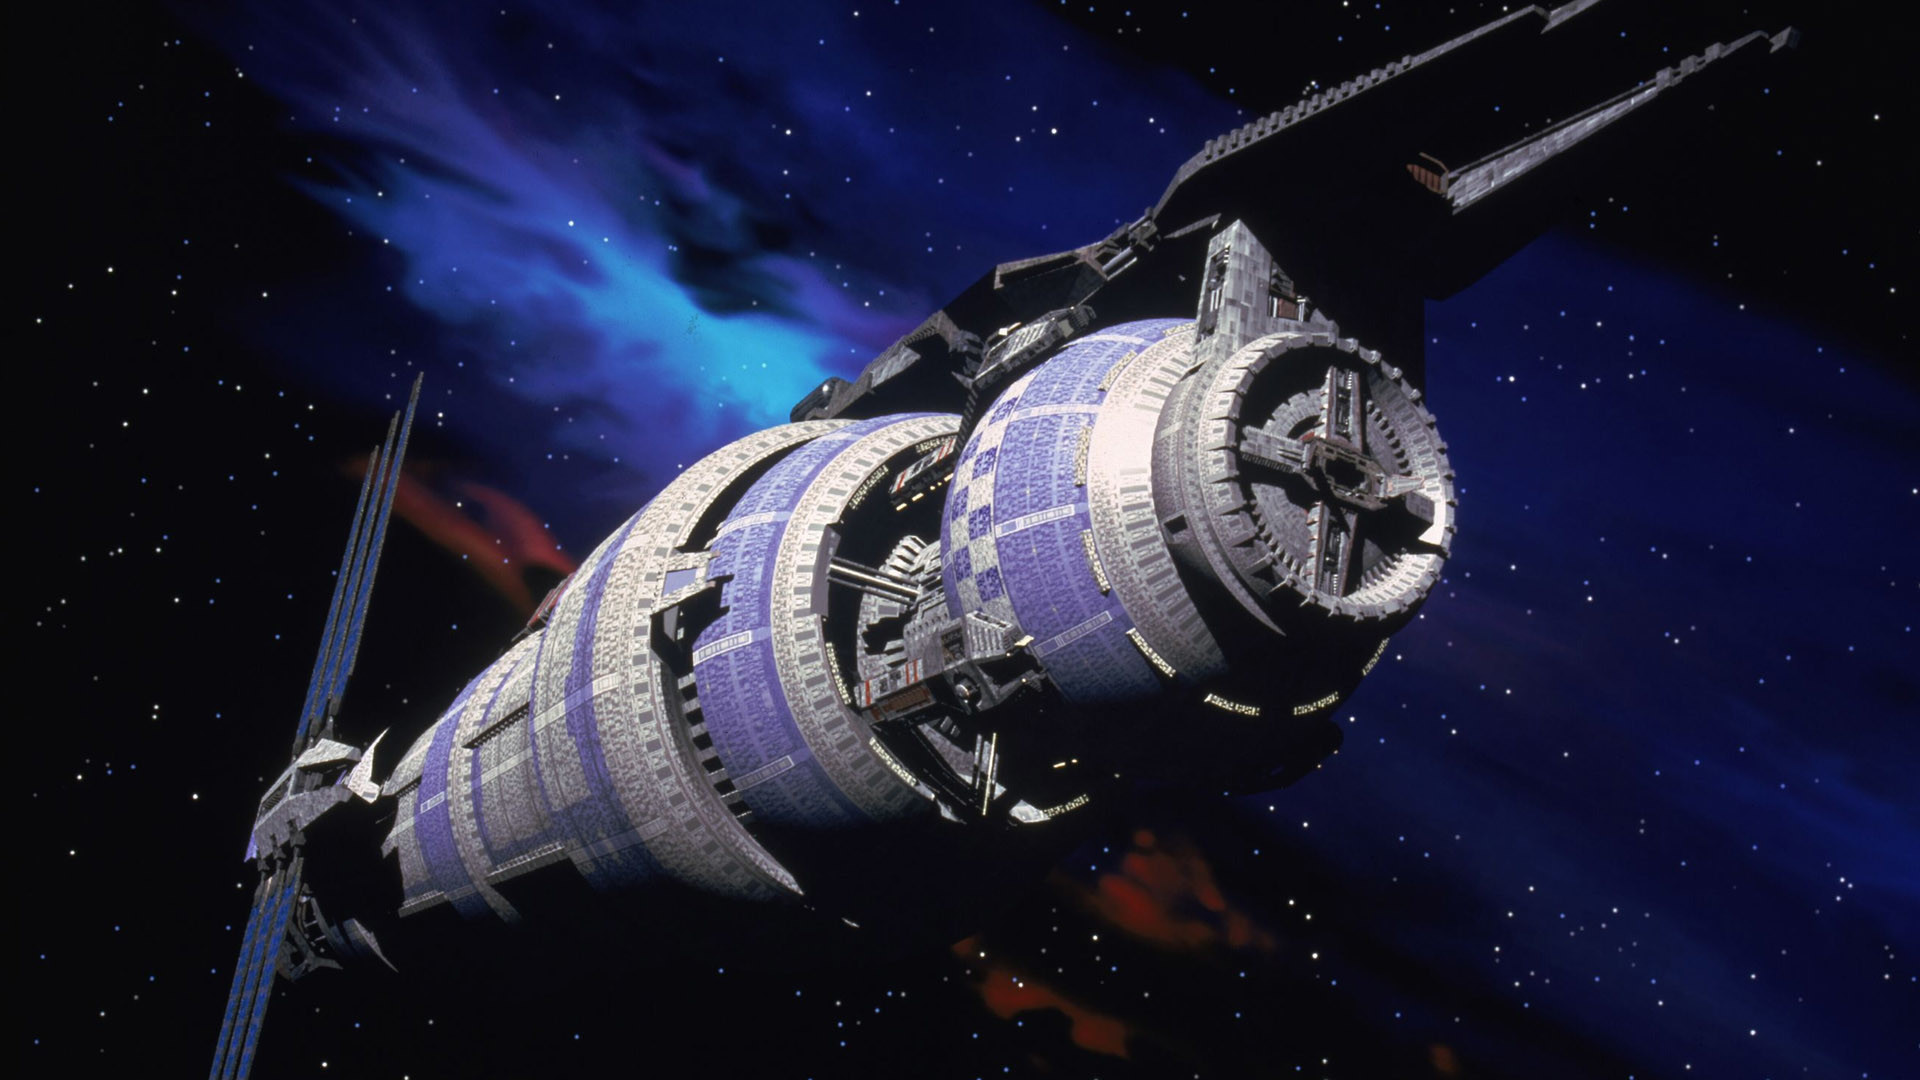 500 best Space 2 images on Pinterest   Star trek ships, Space ship and  Spacecraft